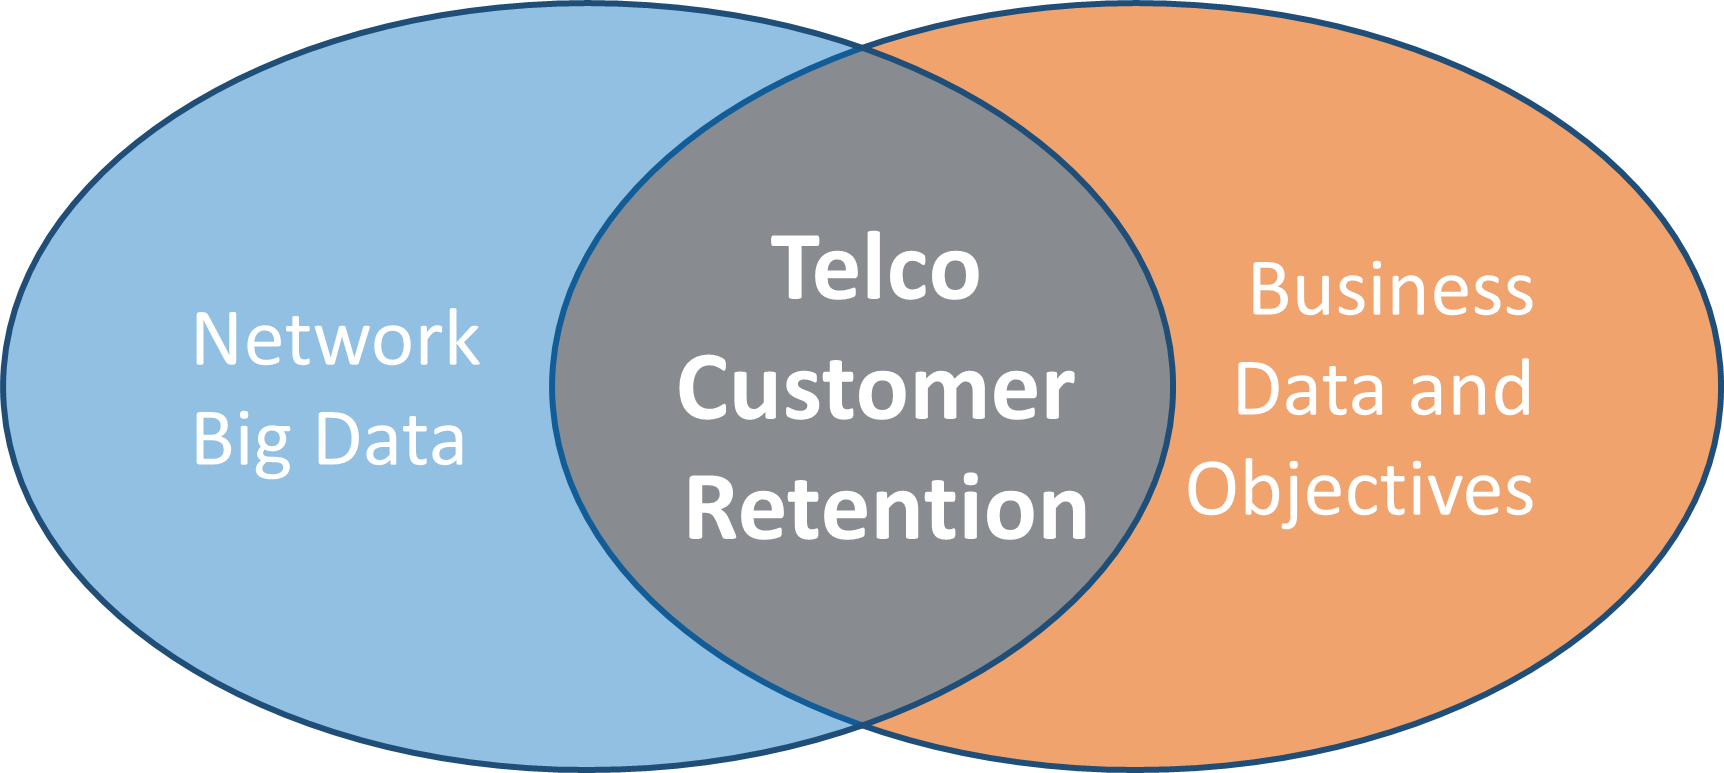 Telco Customer Retention